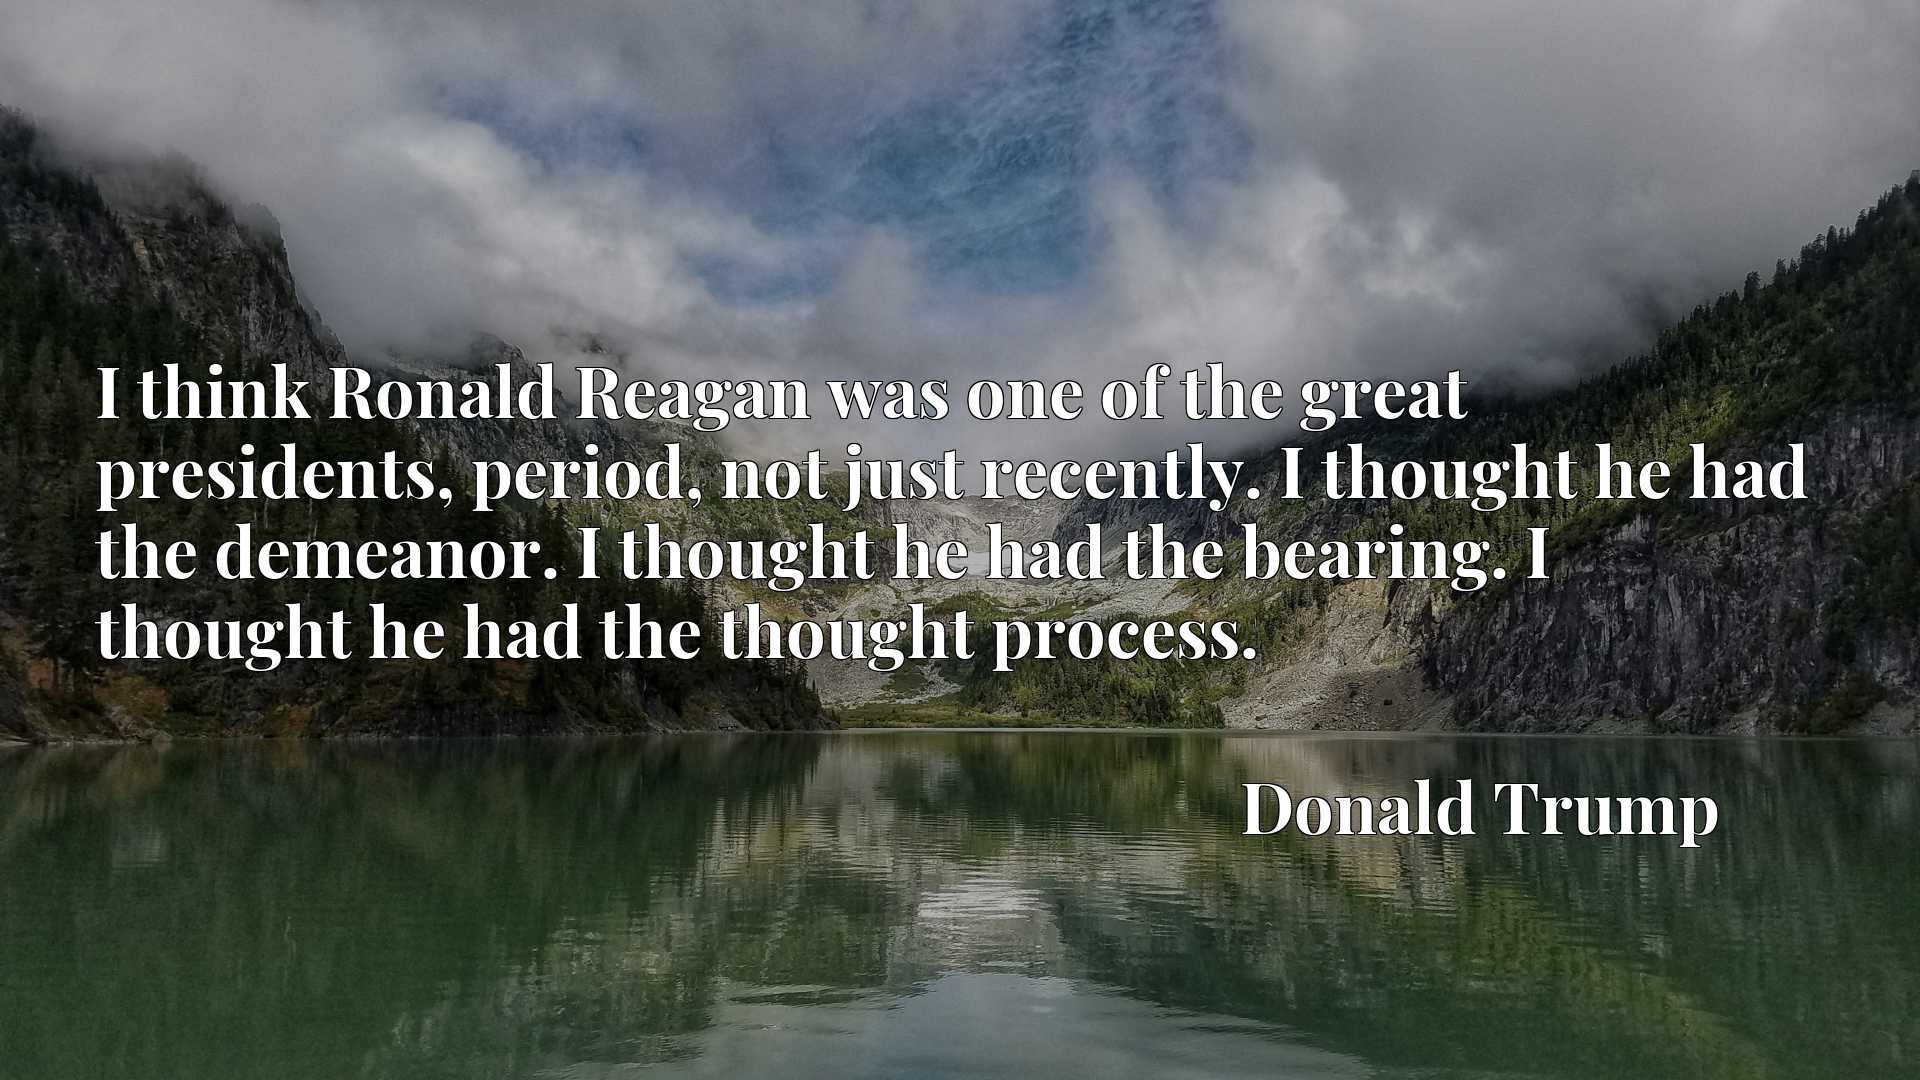 I think Ronald Reagan was one of the great presidents, period, not just recently. I thought he had the demeanor. I thought he had the bearing. I thought he had the thought process.